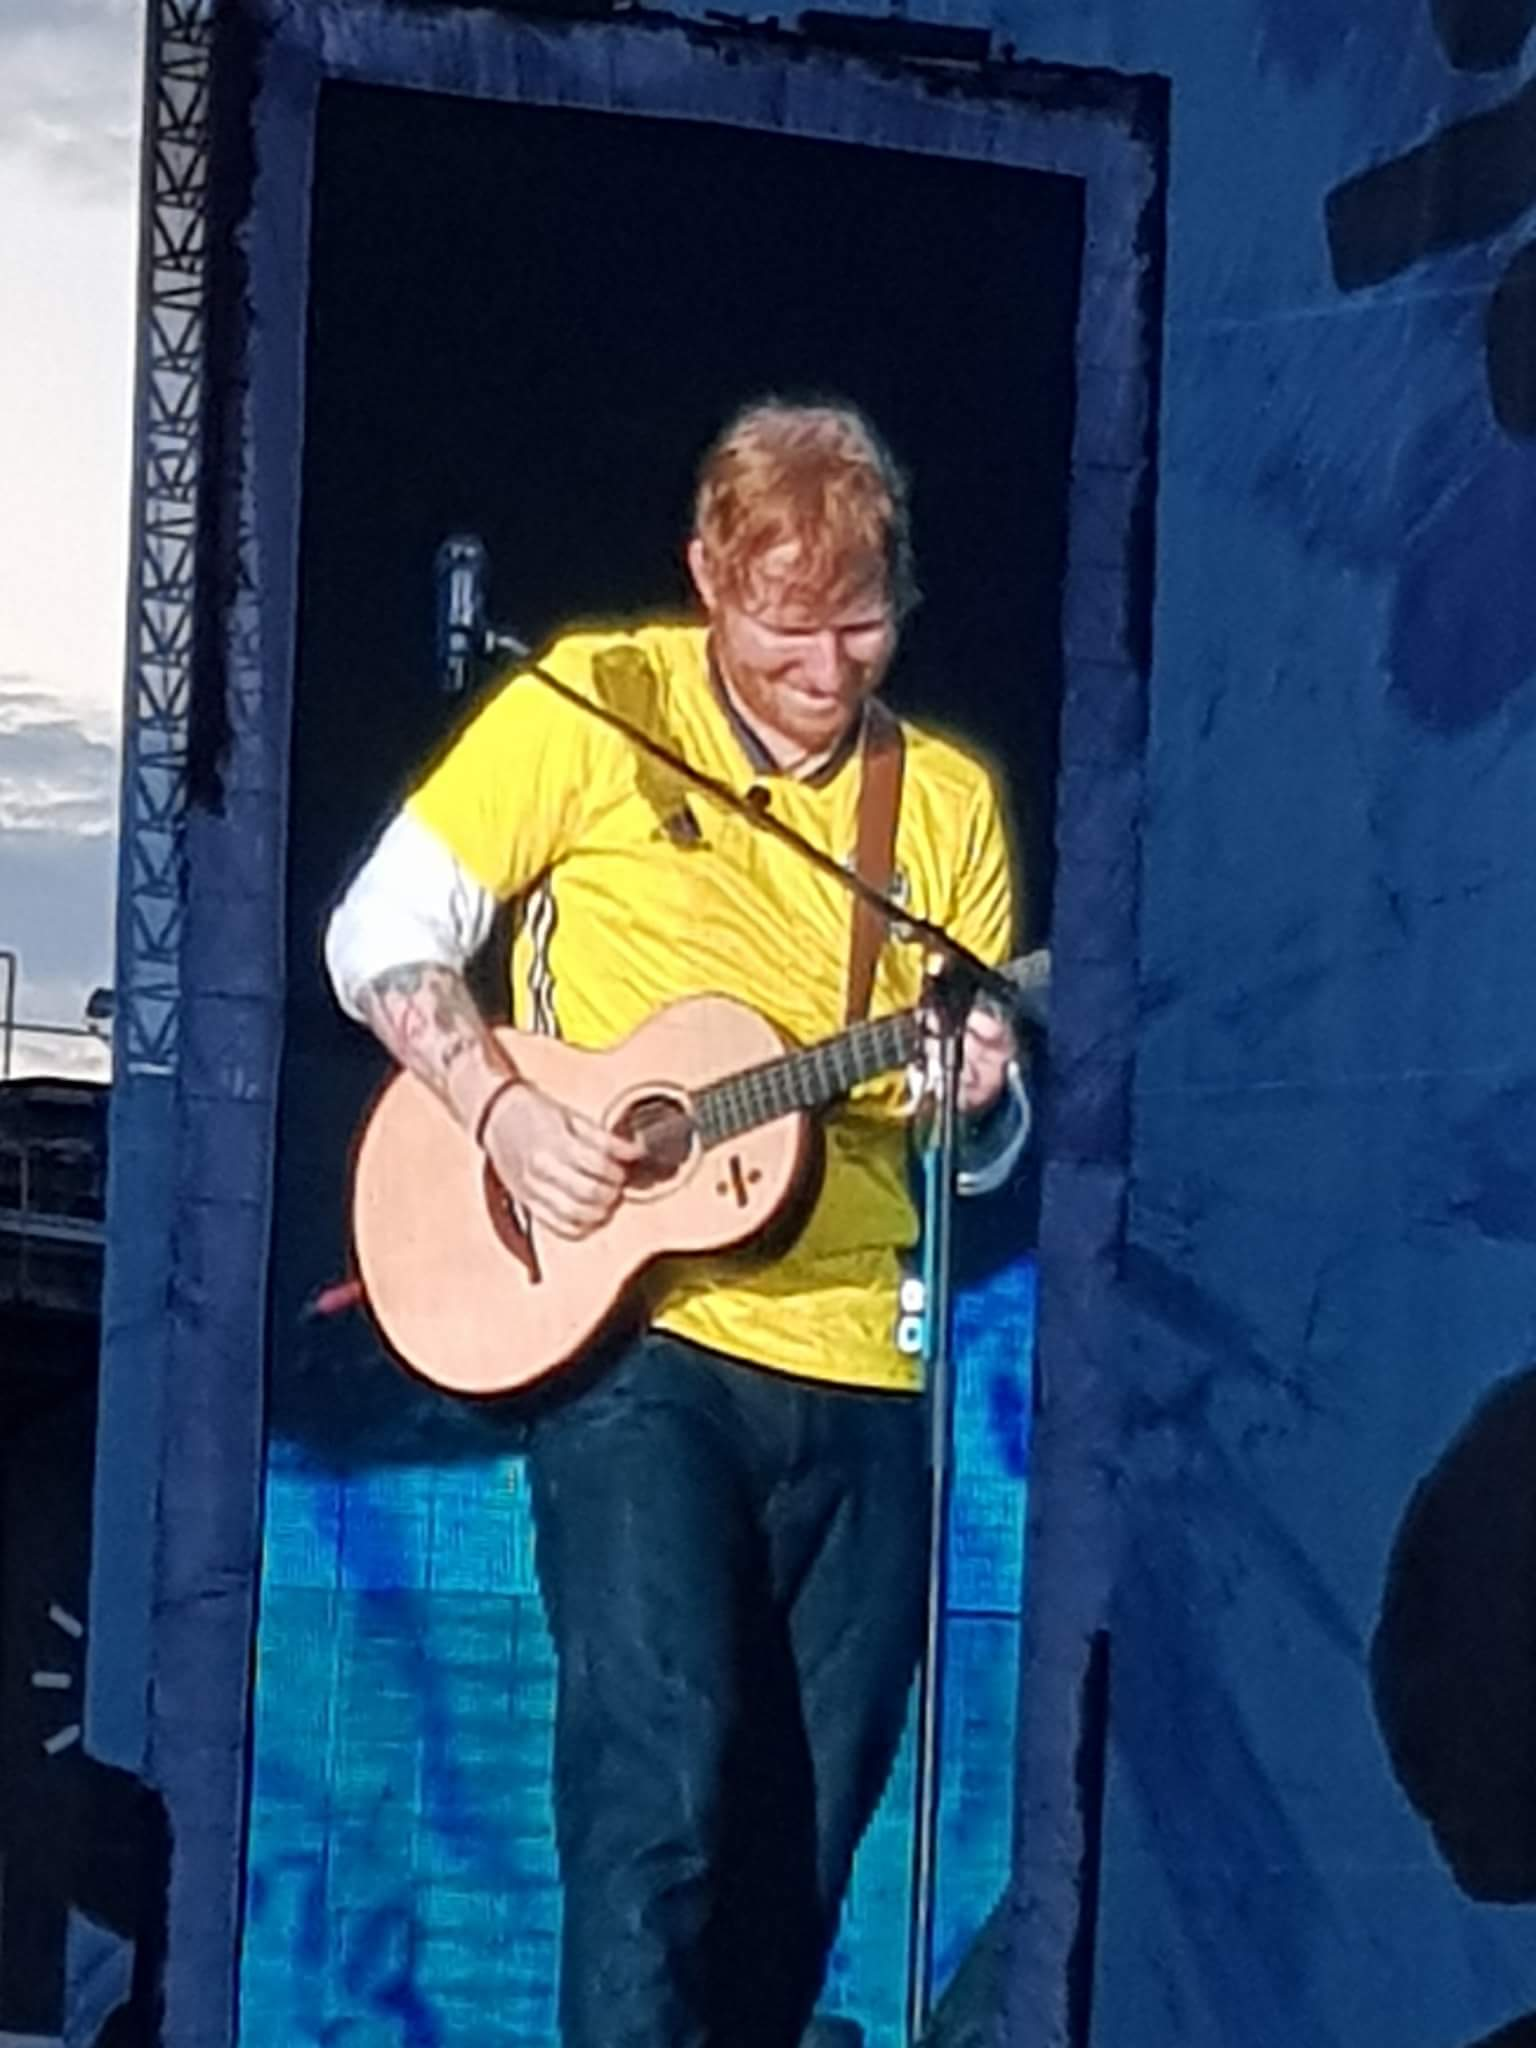 Linn Stenholm Ed Sheeran Gothenburg 2018